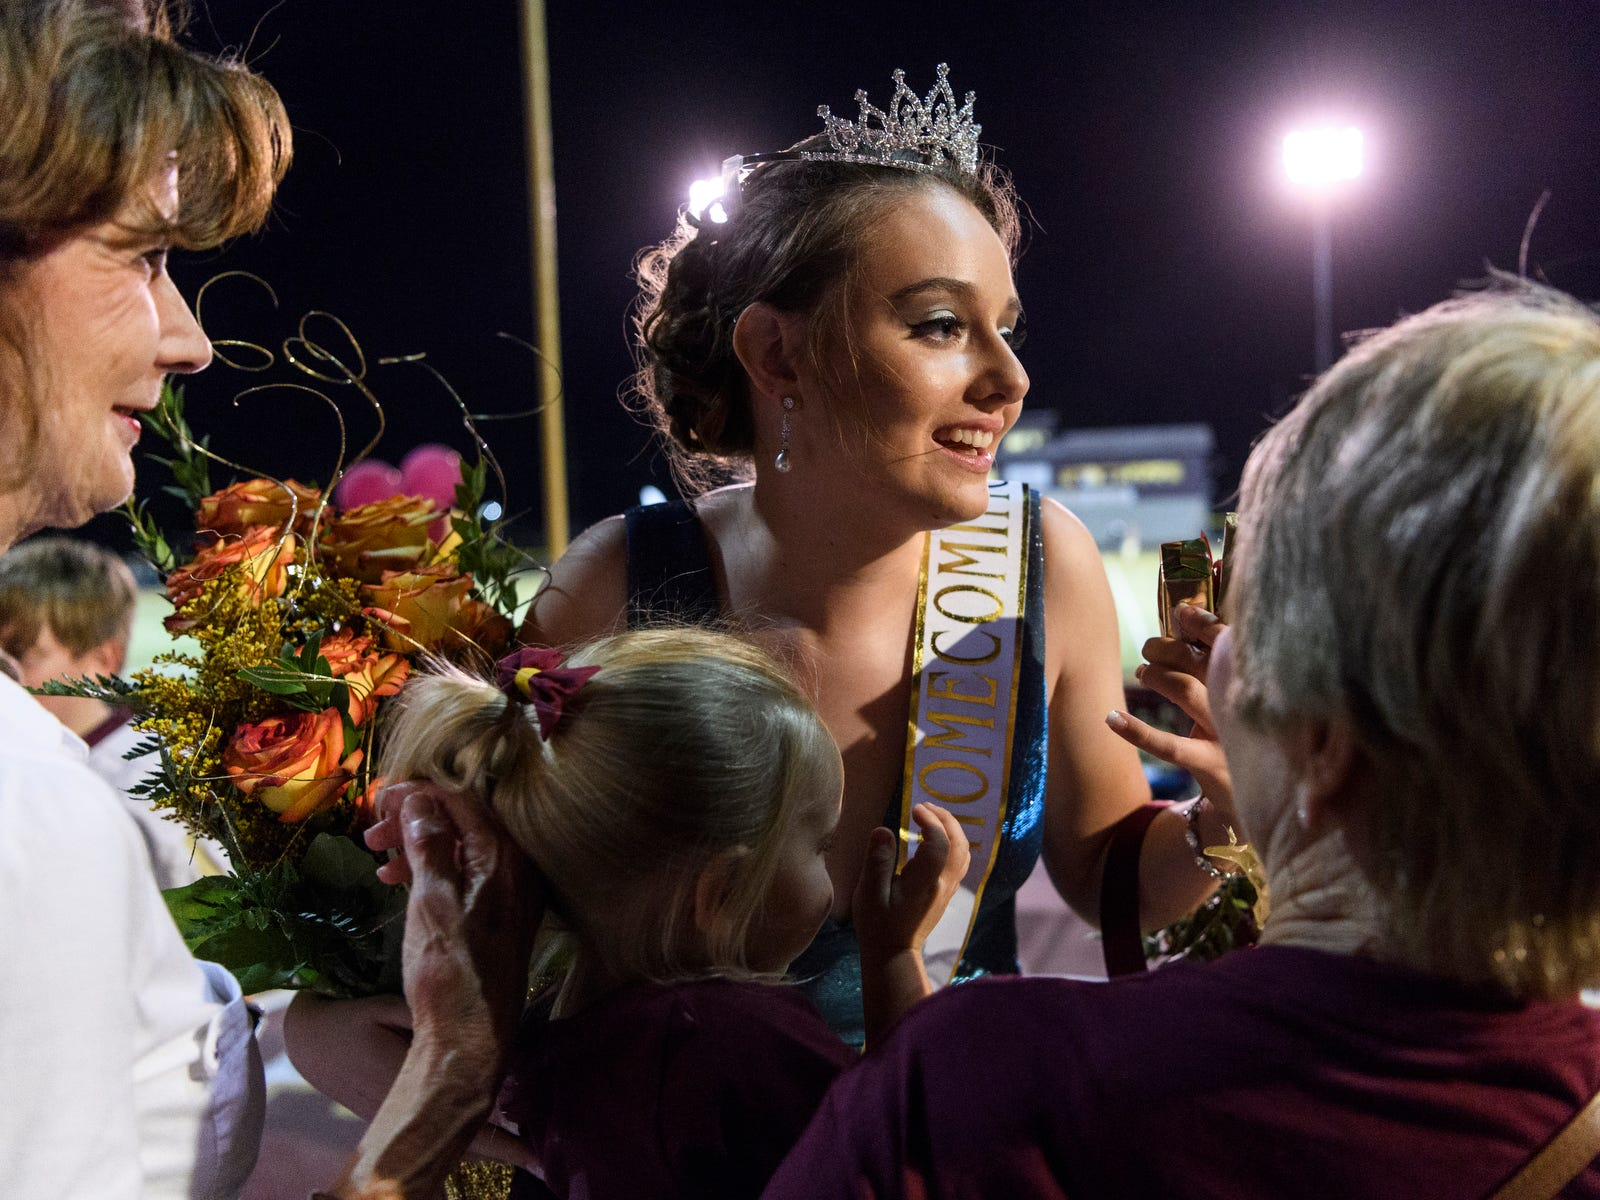 Friends and family surround newly crowned Homecoming Queen Teagan Guard, 17, during halftime of the Mount Carmel Golden Aces and Washington Hatchets game at Riverview Stadium, known as the Snake Pit, in Mount Carmel, Ill., Friday, Sept. 21, 2018. The Golden Aces defeated the Hatchets 61-20.